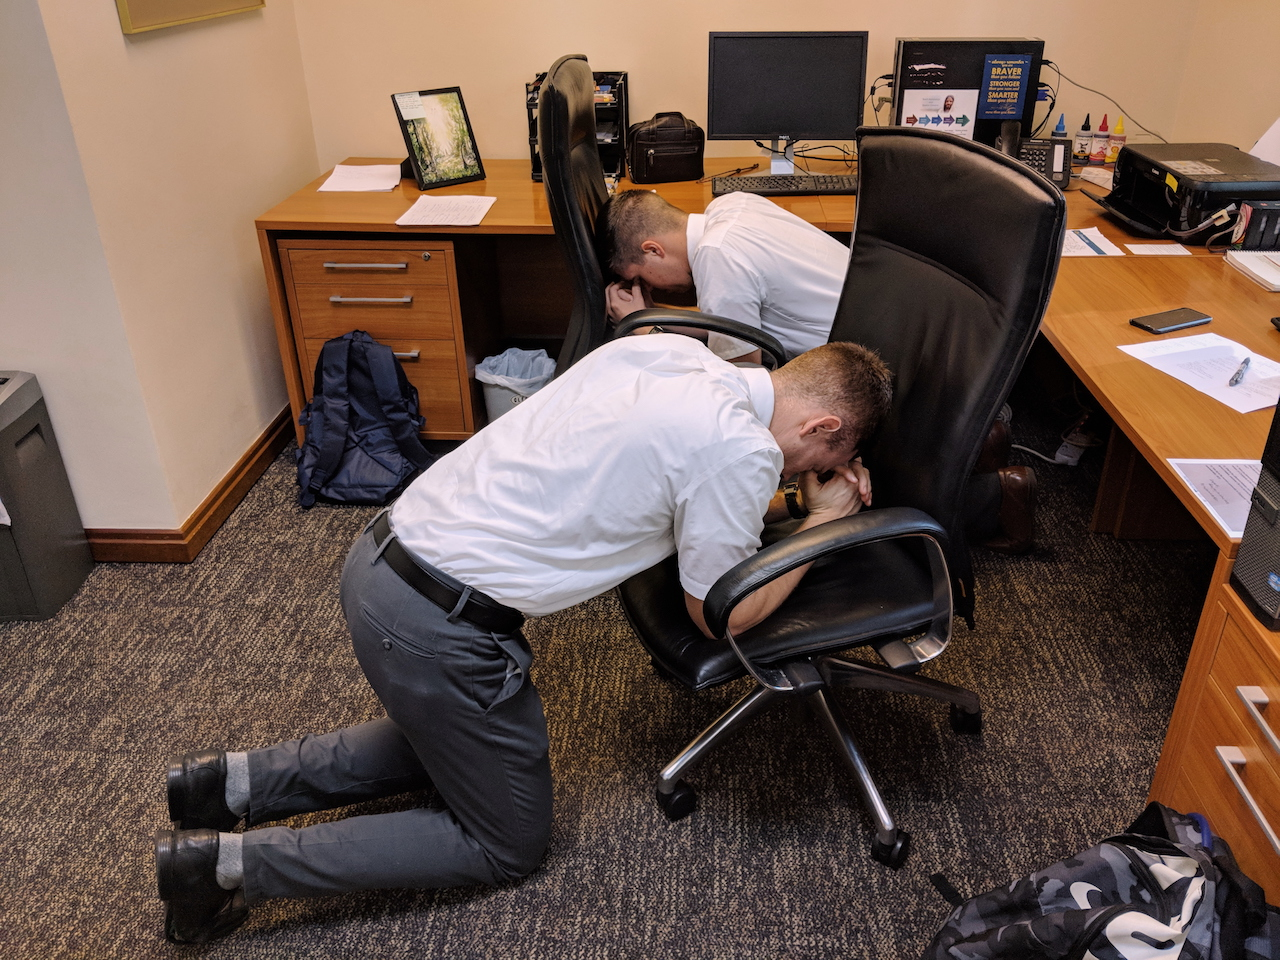 To Understand Who Mormons Are, I Spent 14 Hours in a Missionary's Position